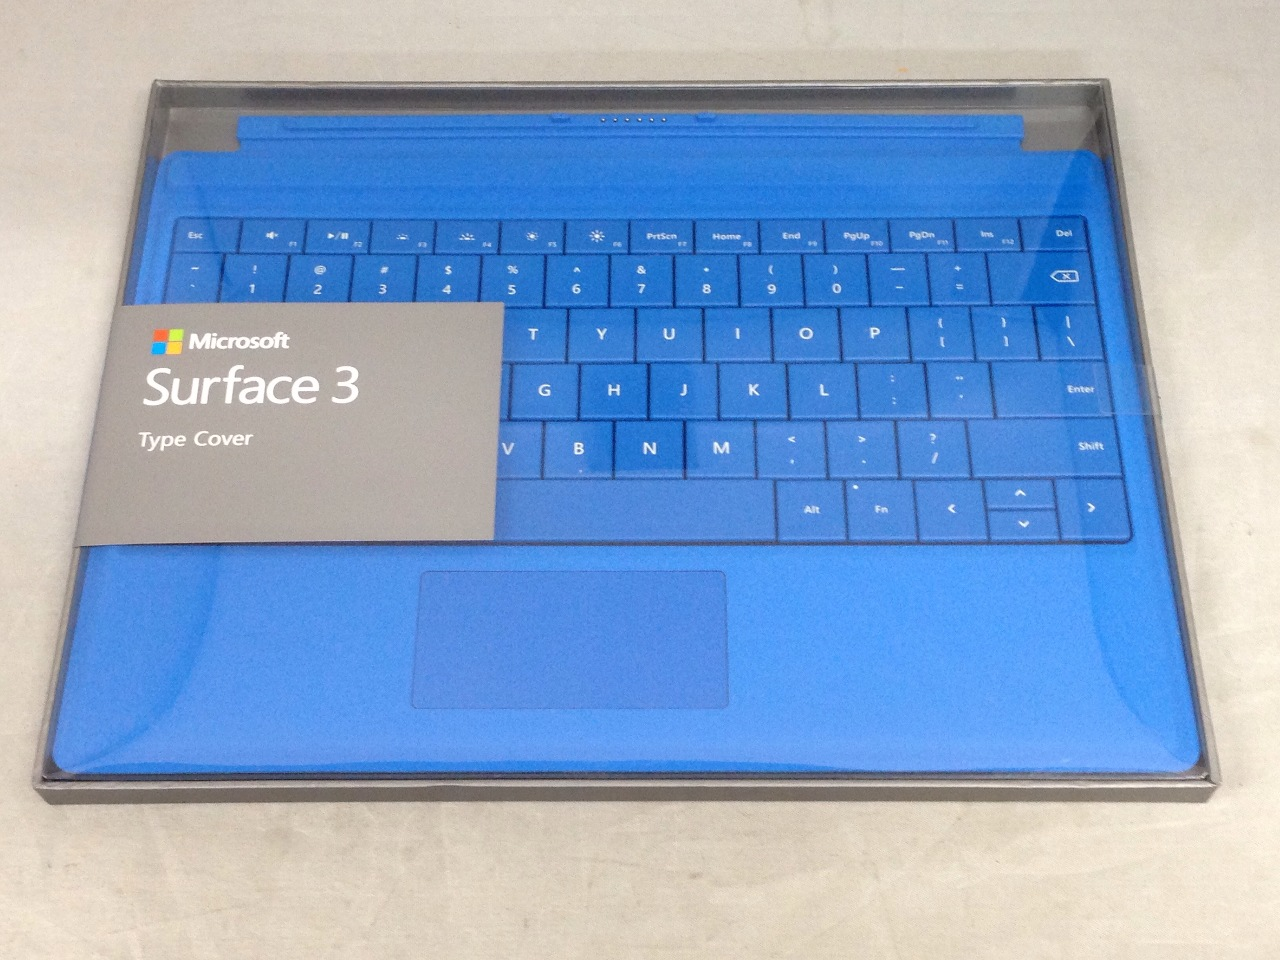 Microsoft Surface 3 Type Cover SC English, Bright Blue (A7Z-00002) - SEALED